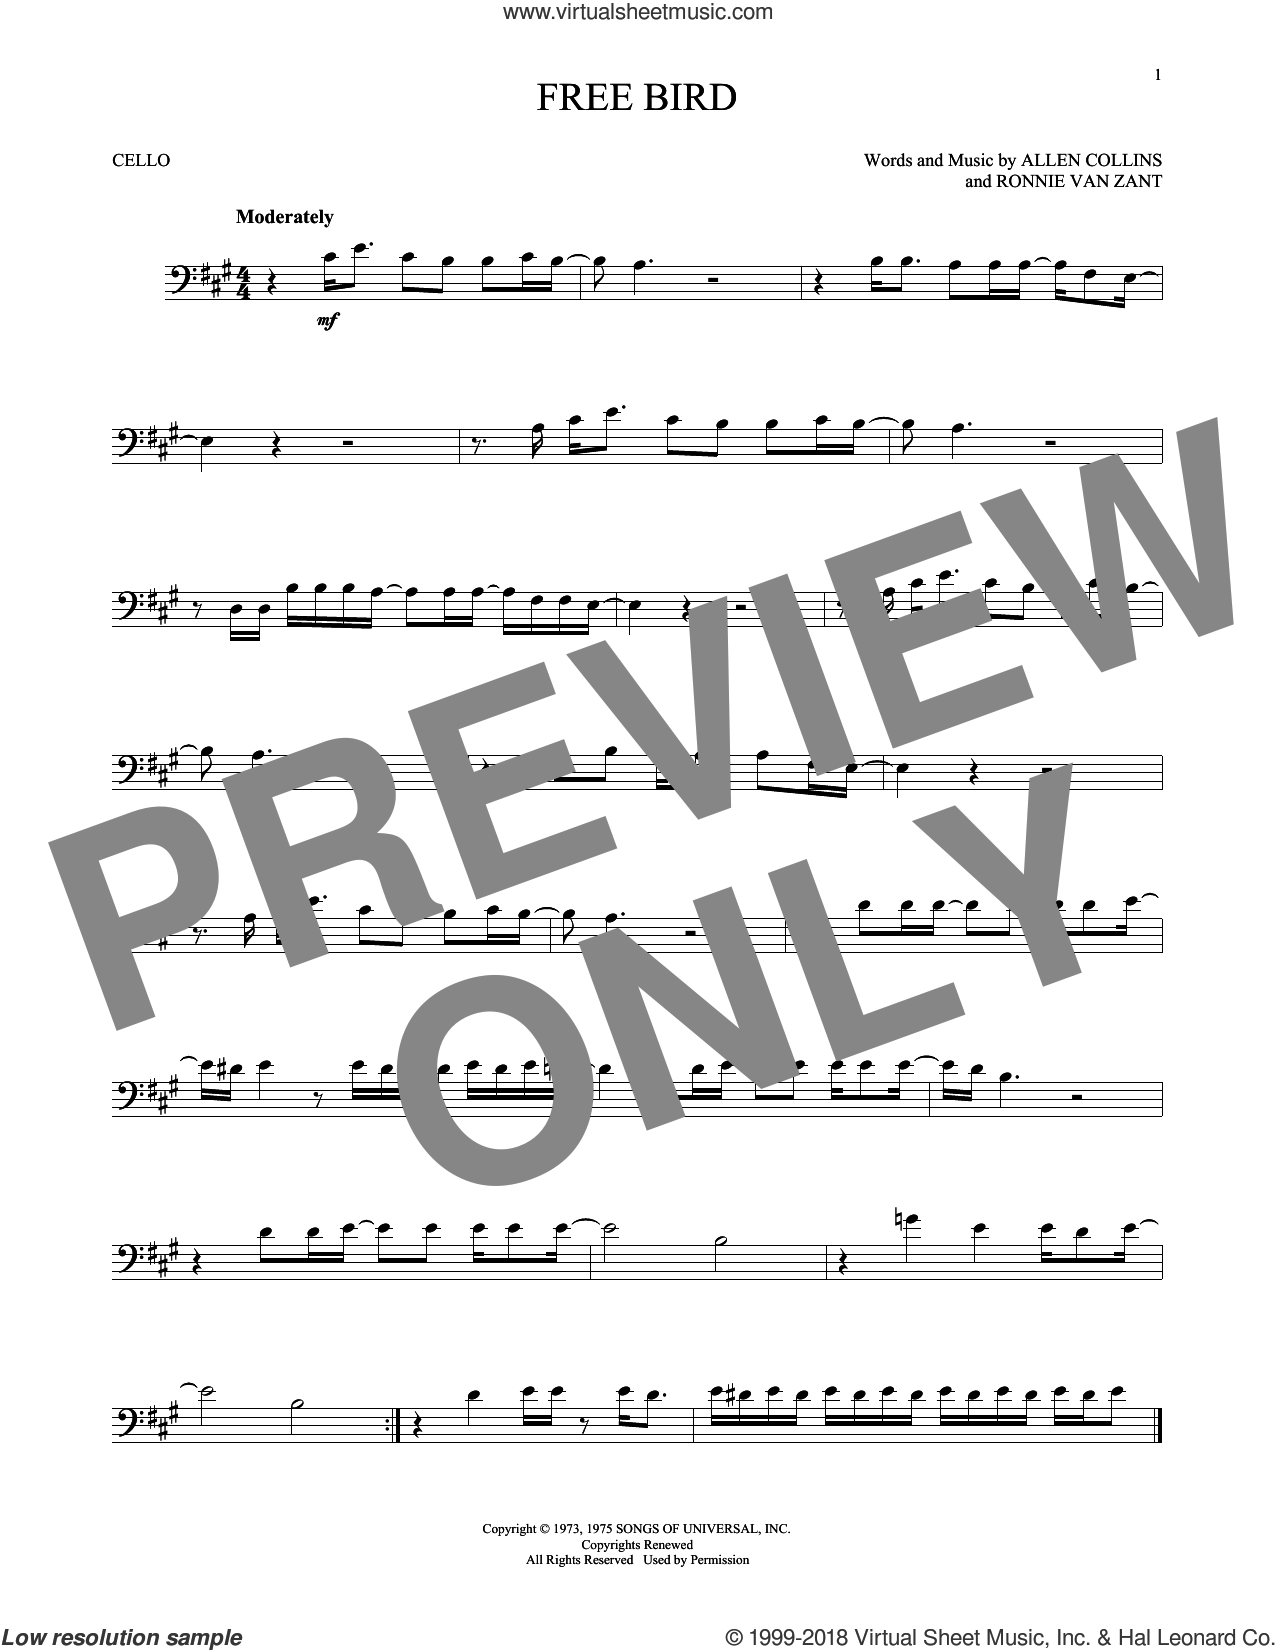 Free Bird sheet music for cello solo by Lynyrd Skynyrd, Allen Collins and Ronnie Van Zant, intermediate skill level